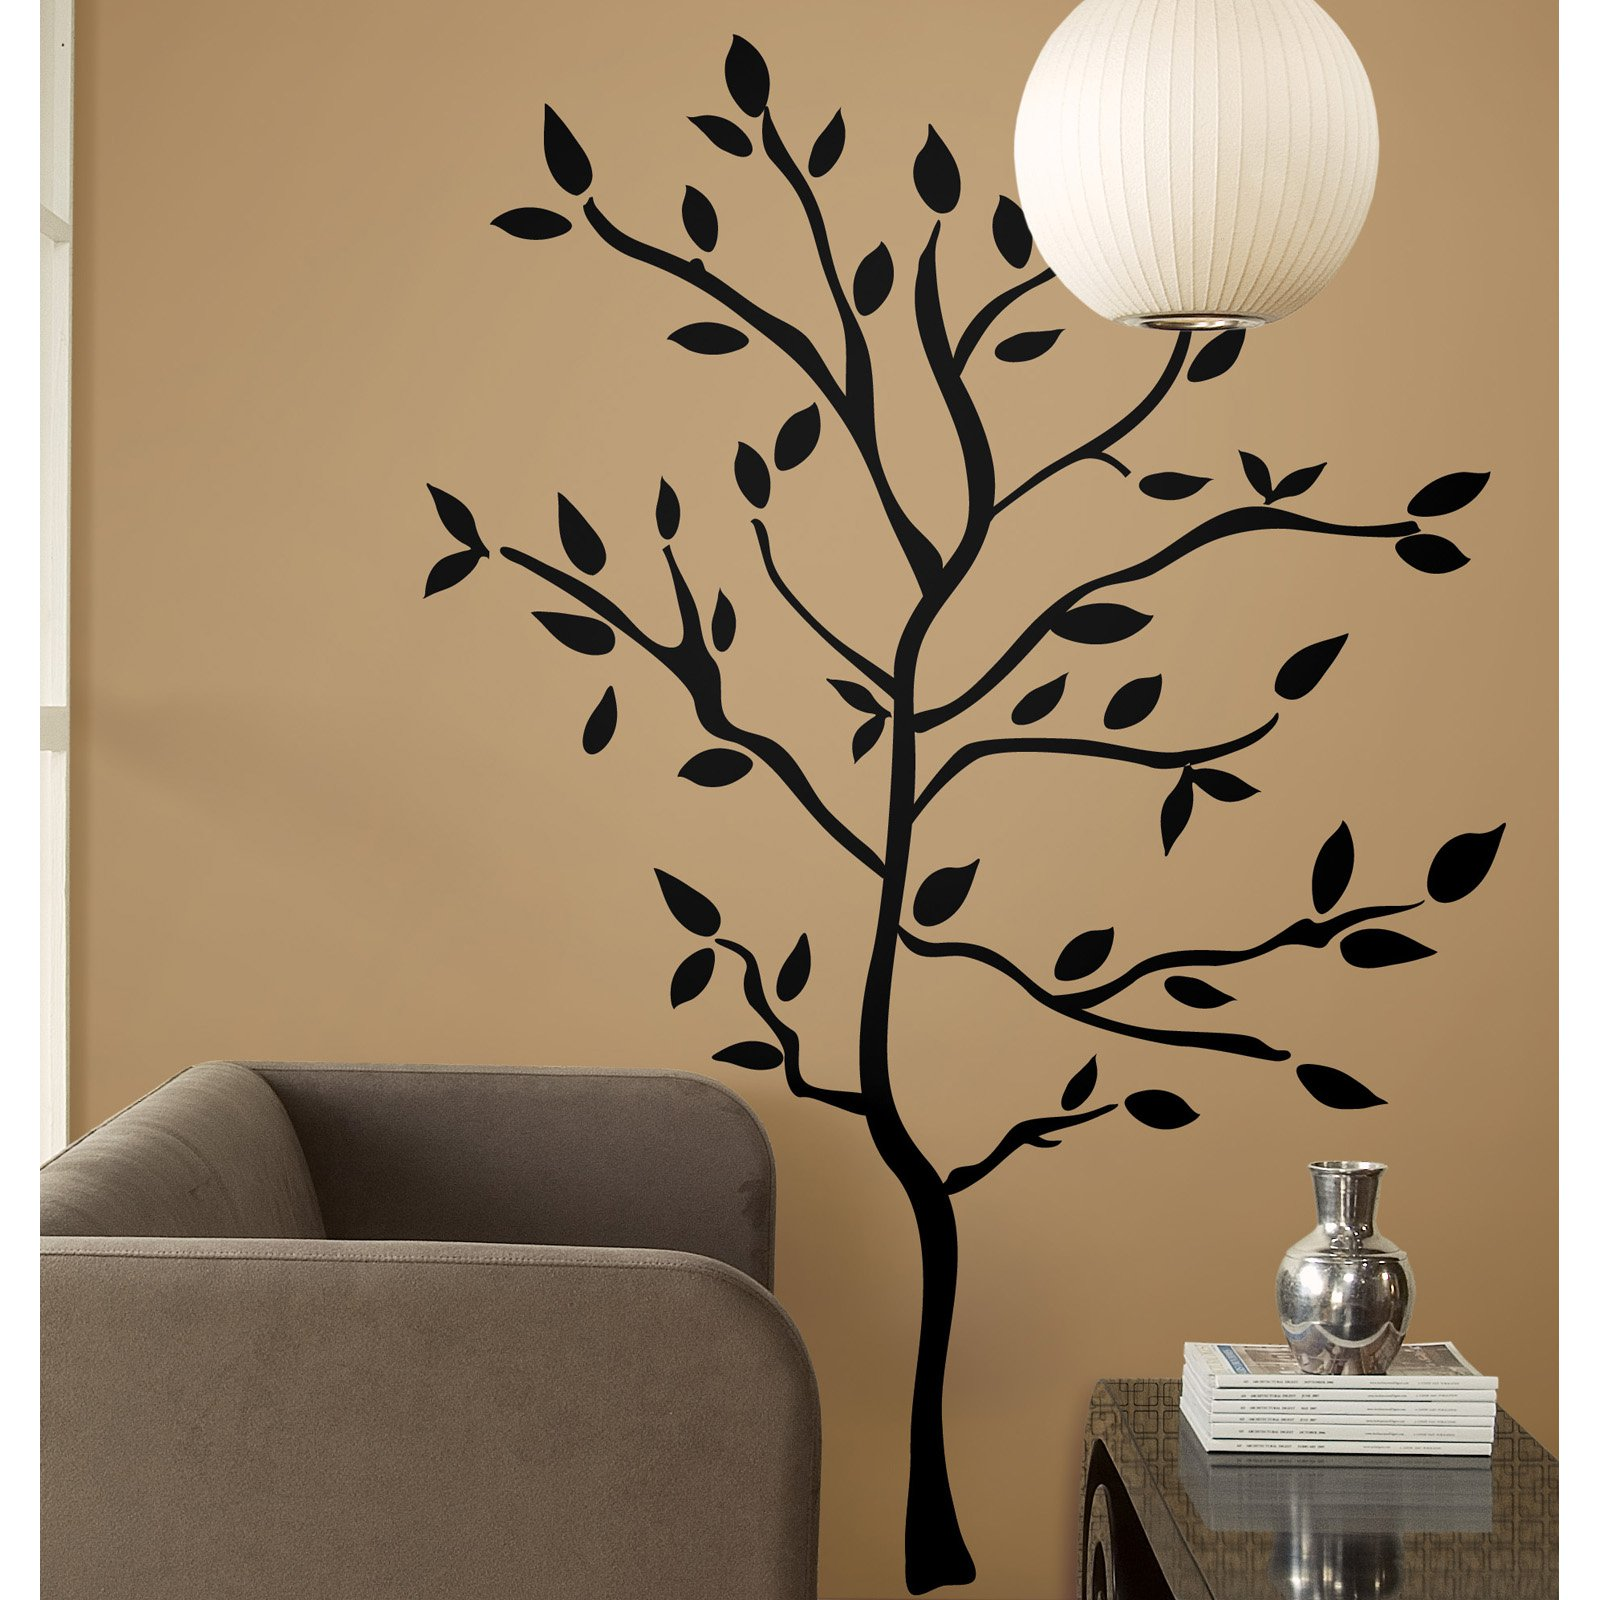 Tree Branches Peel and Stick Wall Decals - Walmart.com